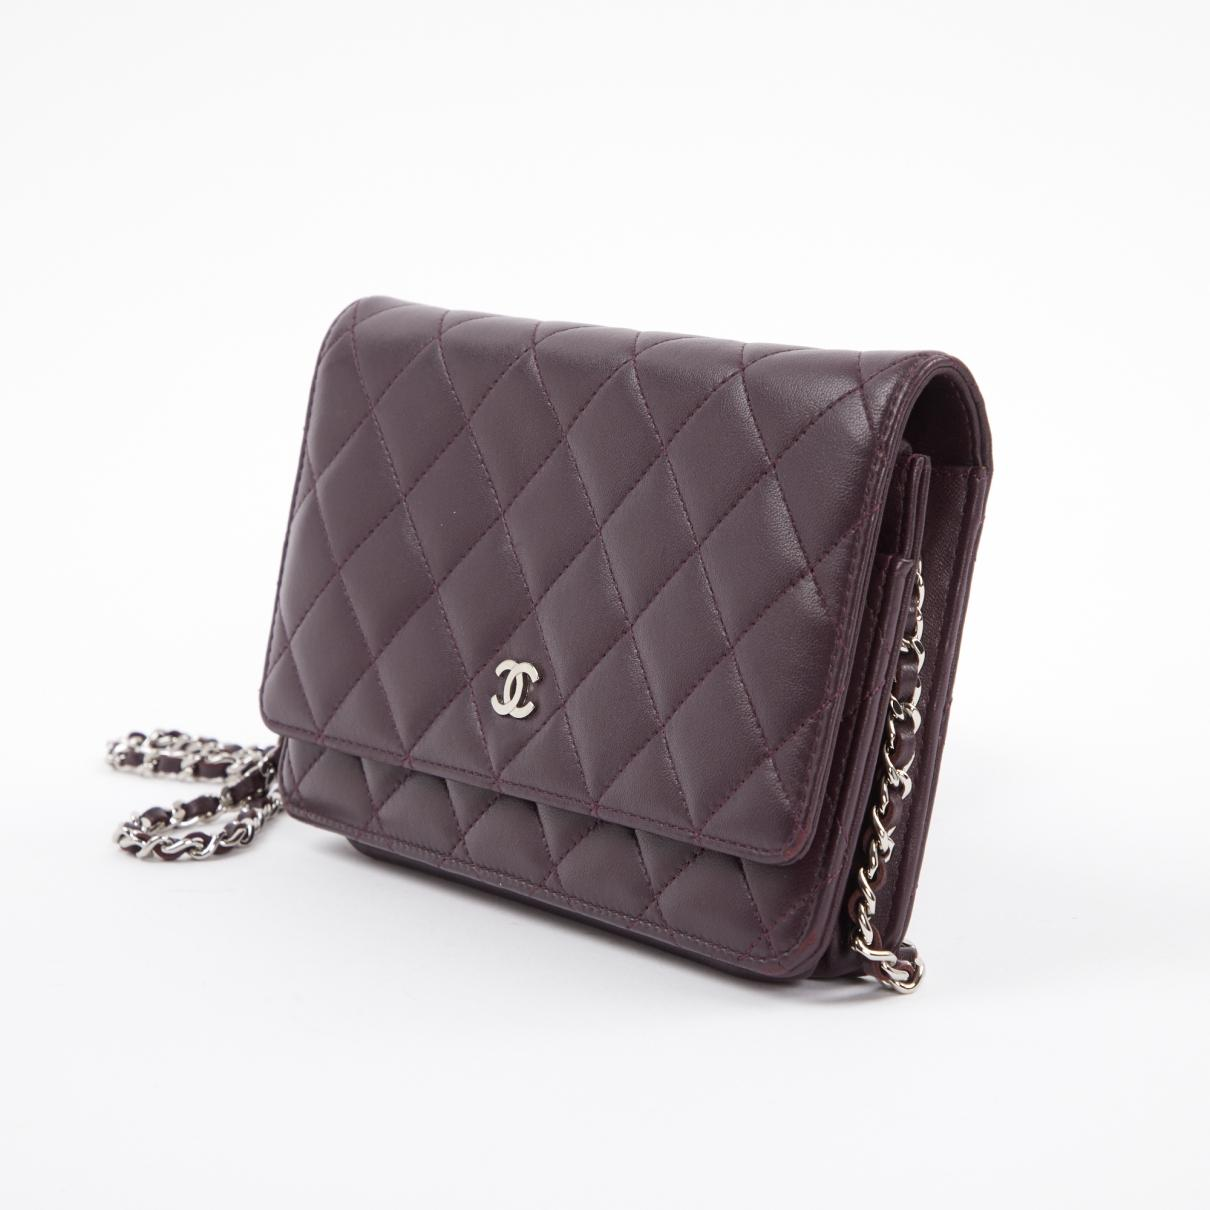 3c8fc5d5a8ab Chanel - Wallet On Chain Purple Leather Handbag - Lyst. View fullscreen